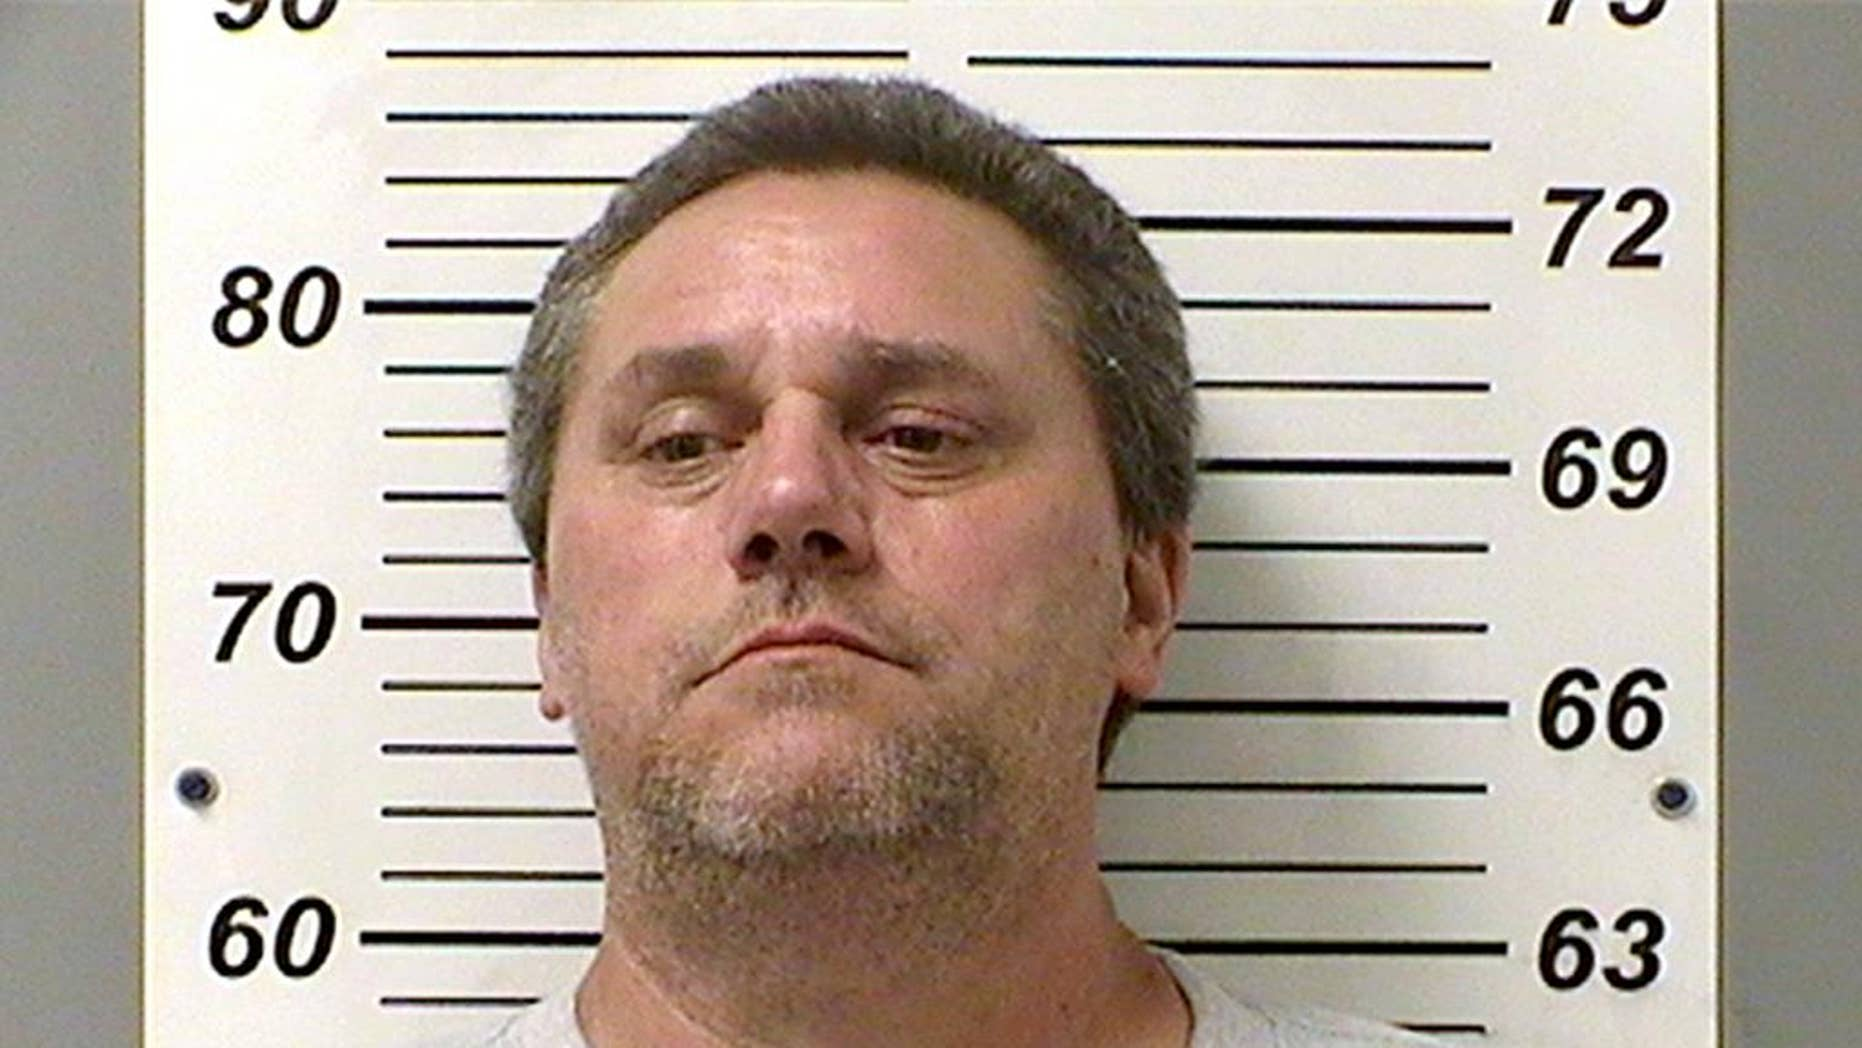 FILE - This undated file booking photo provided by the Fulton County Sheriff's Department shows James Worley. Worley, who spent three years in prison after the 1990 abduction of a female cyclist, was arrested July 22, 2016, three days after University of Toledo student Sierah Joughin disappeared and the same day her body was found in a northwest Ohio cornfield. Worley was charged with aggravated murder on July 26, 2016, and a spokeswoman for the Ohio Attorney General's Office said Wednesday, Aug. 3, 2016, that no human remains were found during a late July search of Worley's property outside Delta, Ohio. (Fulton County Sheriff's Department via The Blade via AP, File)